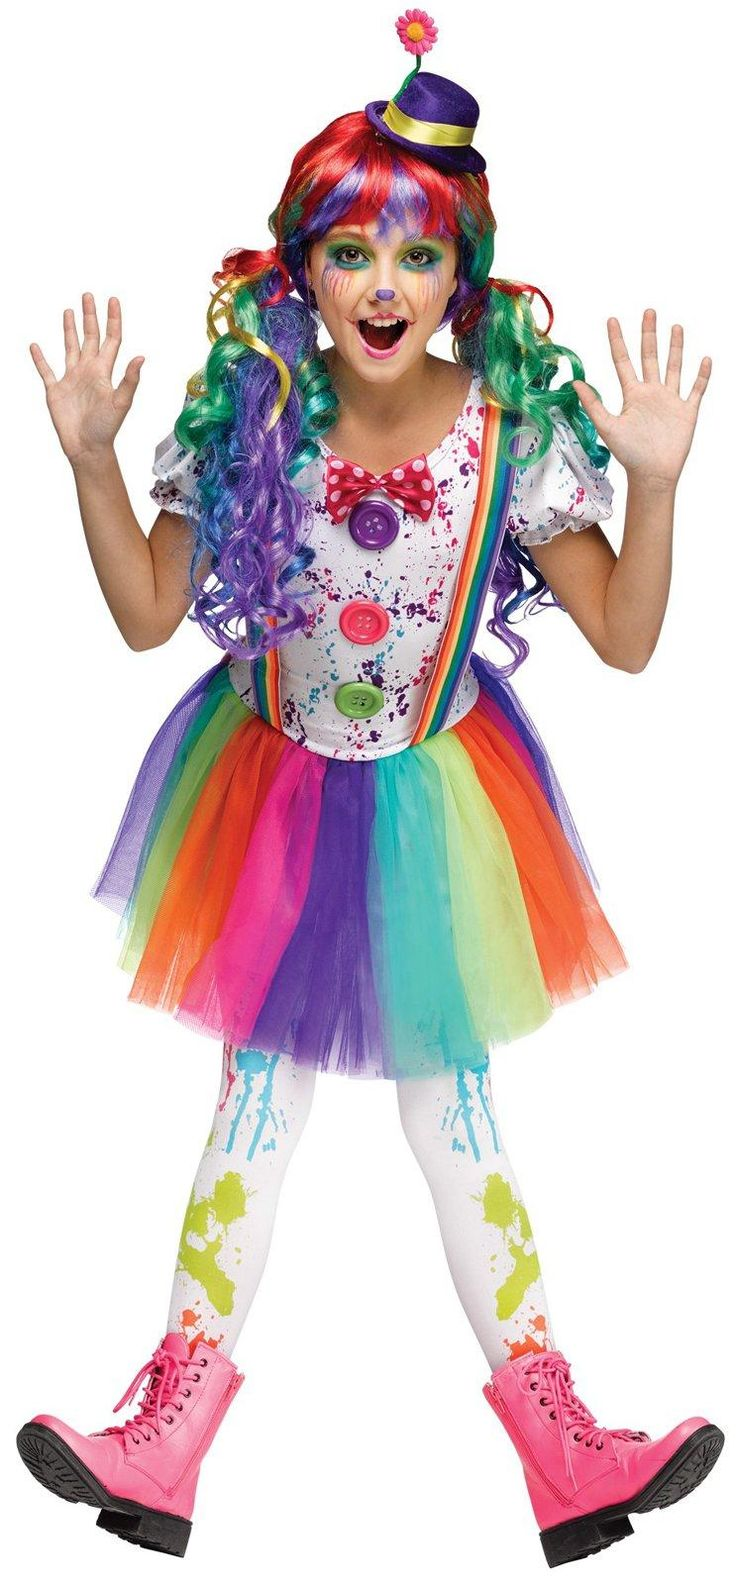 Kids Crazy Color Clown Costume from Buycostumes.com